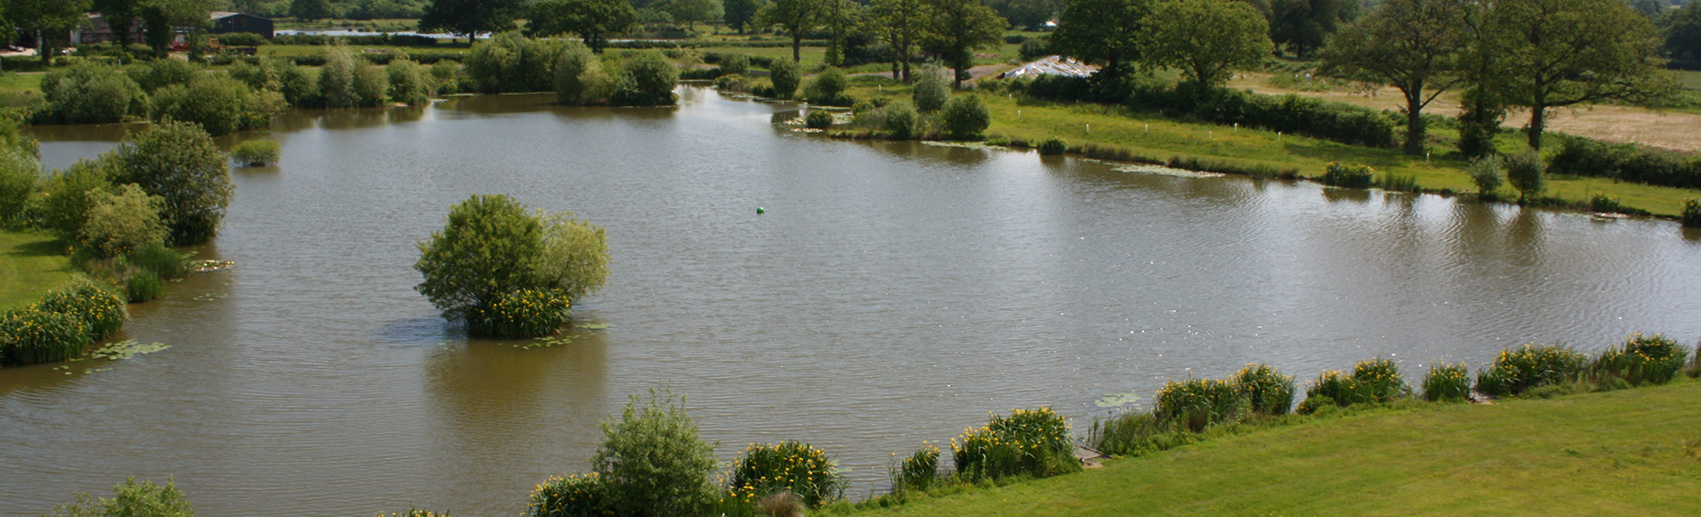 guinea fishing lake - newdigate farms estate